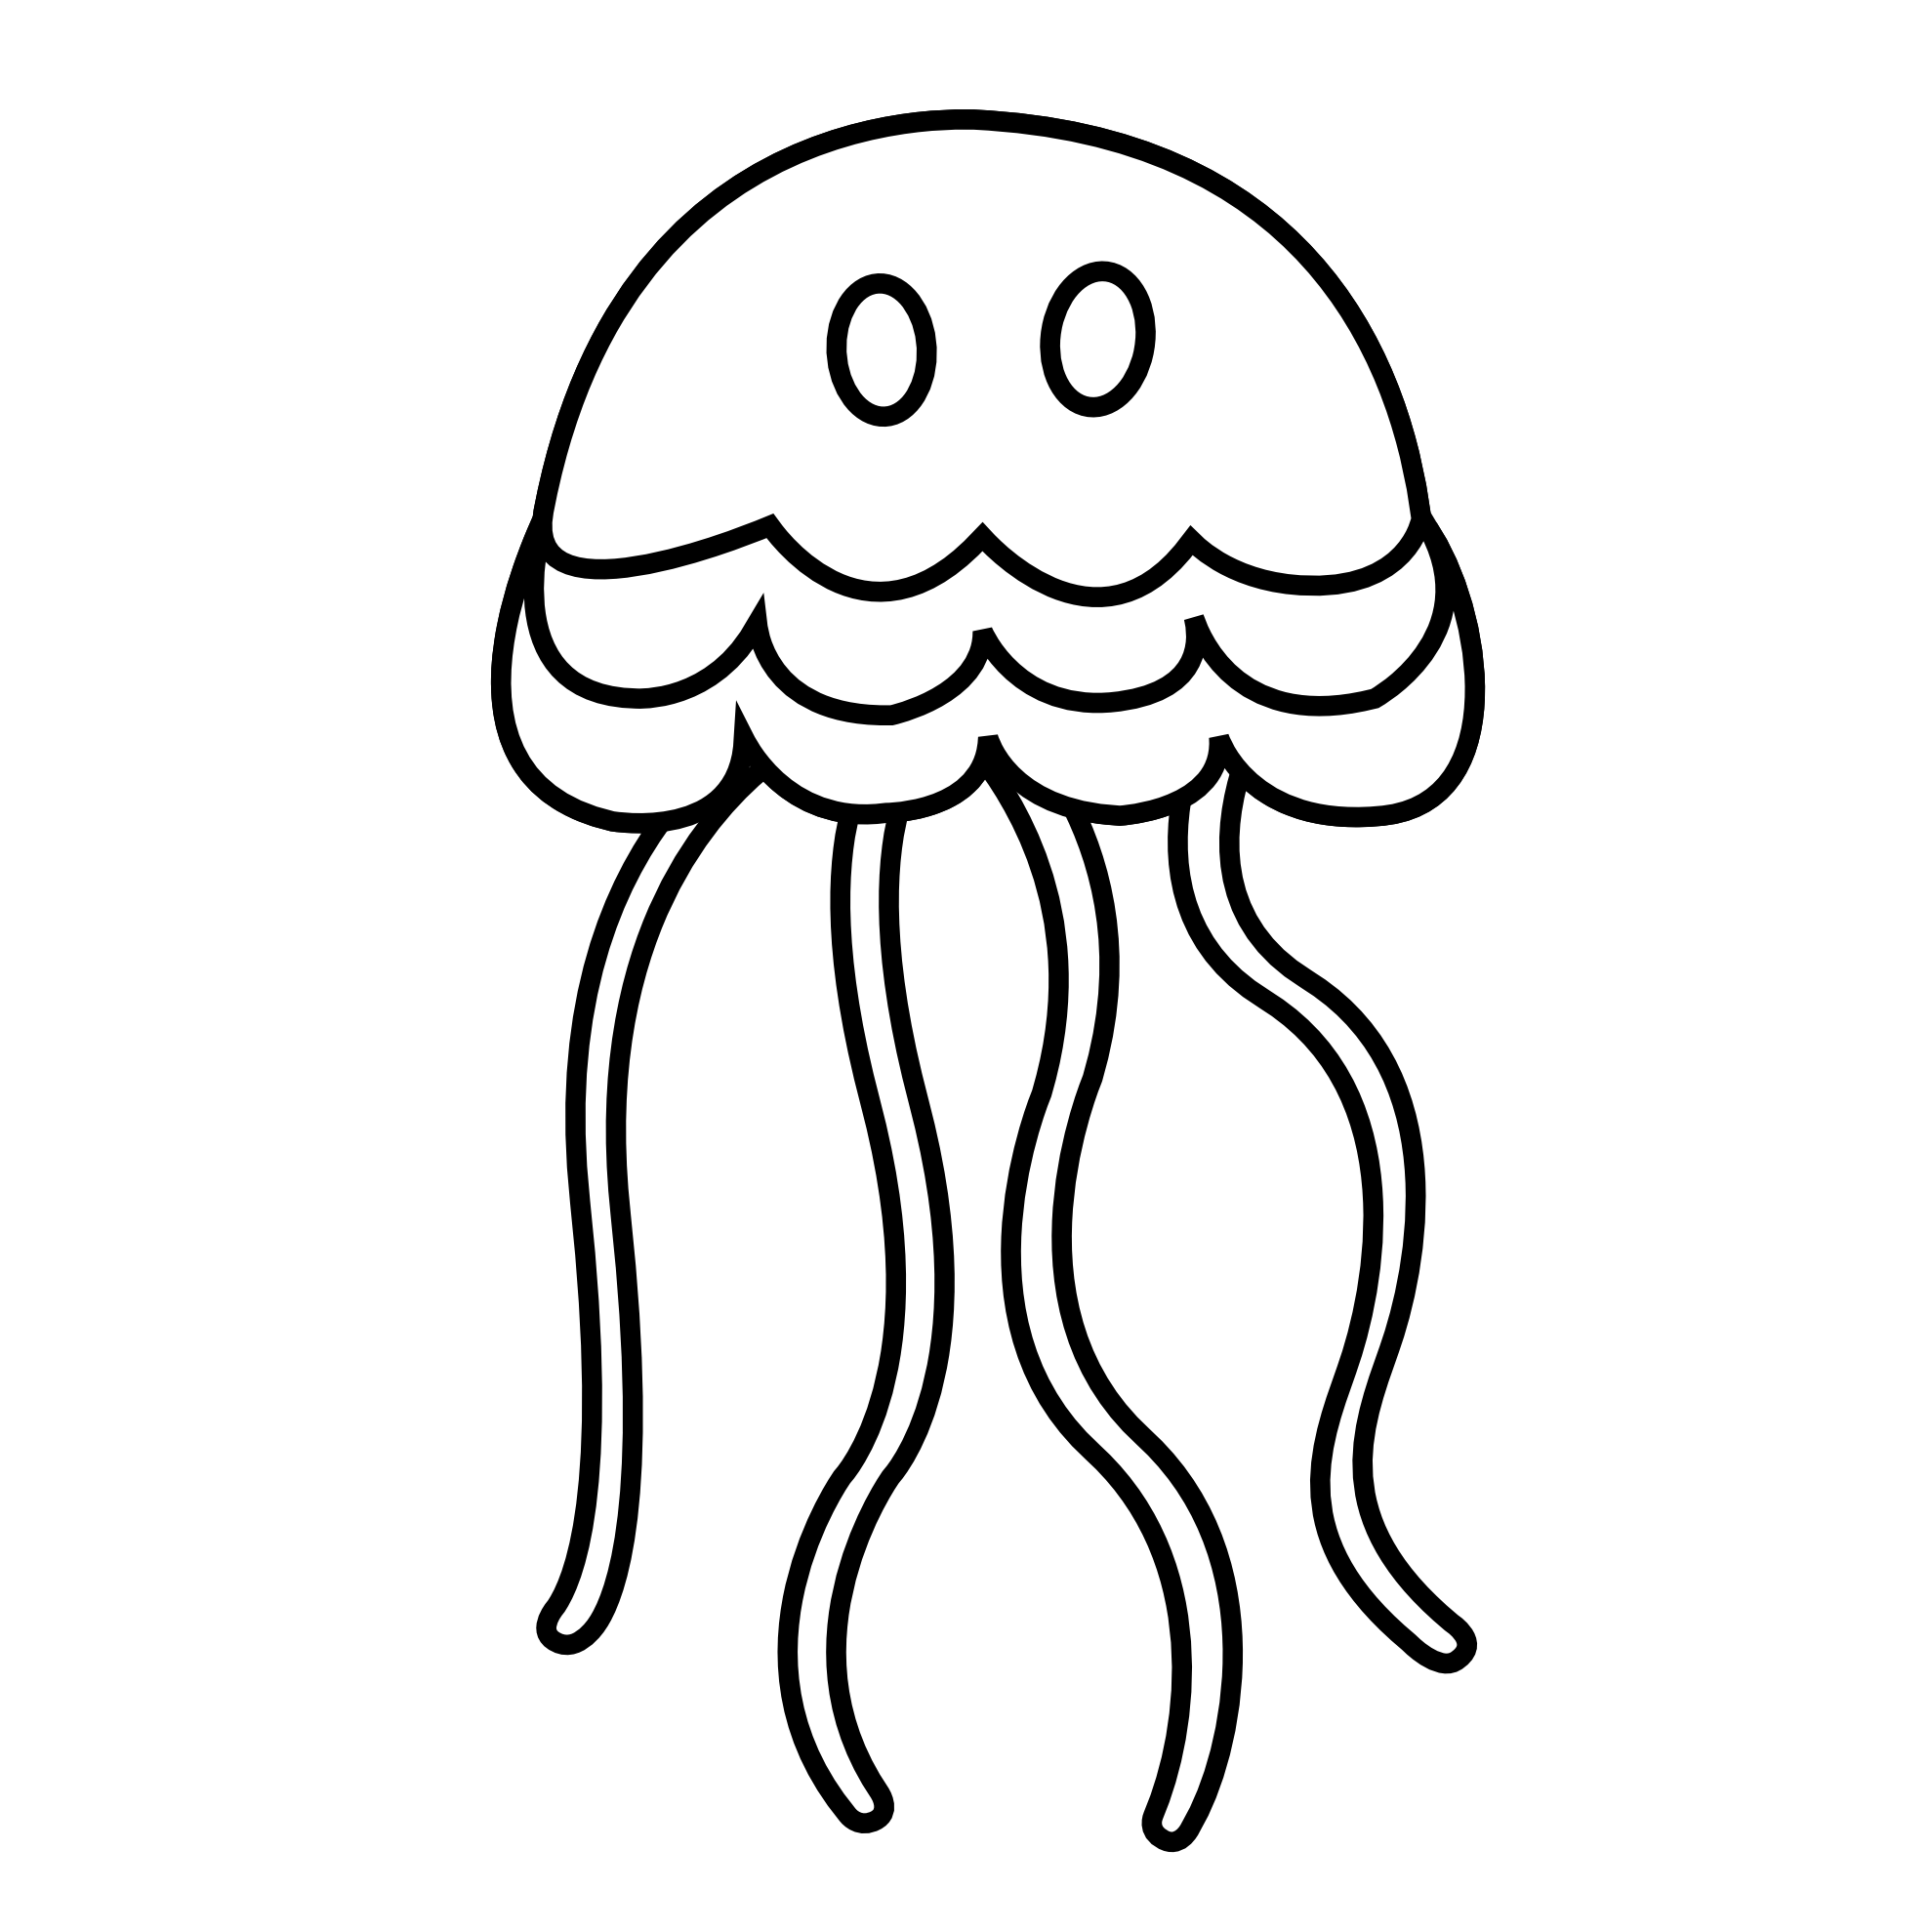 Jellyfish Black And White Clipart clip royalty free download